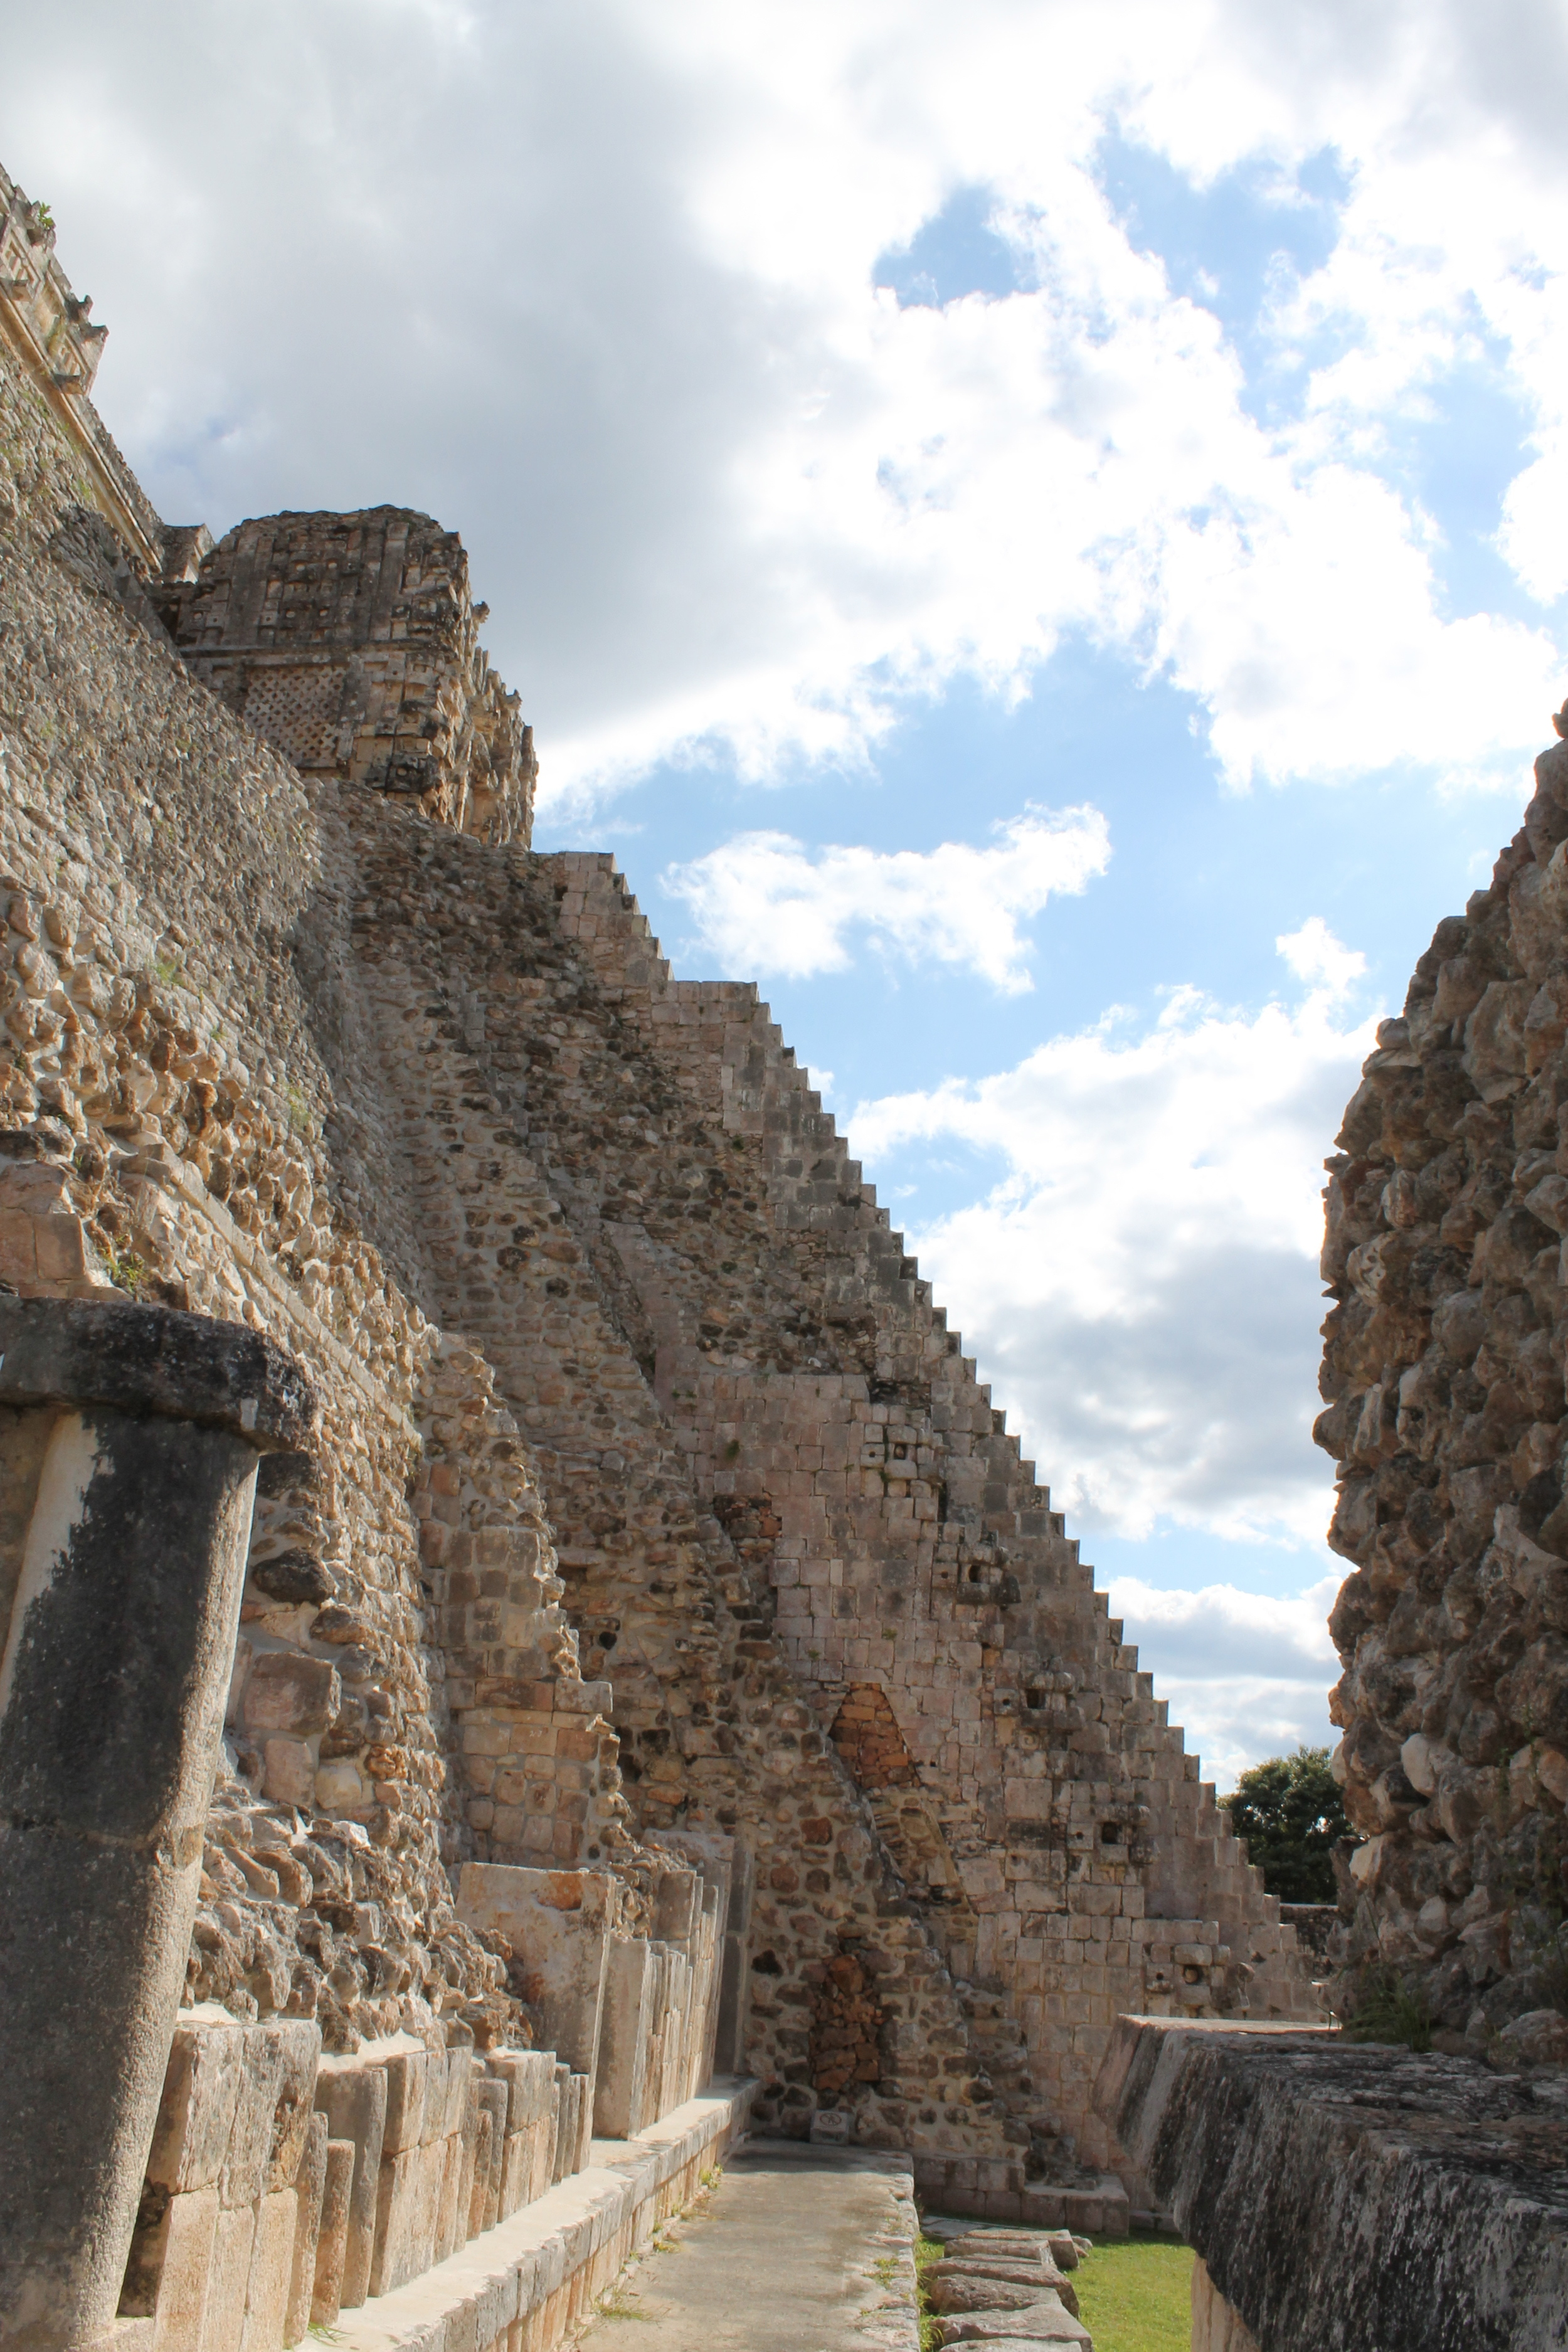 The pyramid of the Magician, from the side, at Uxmal